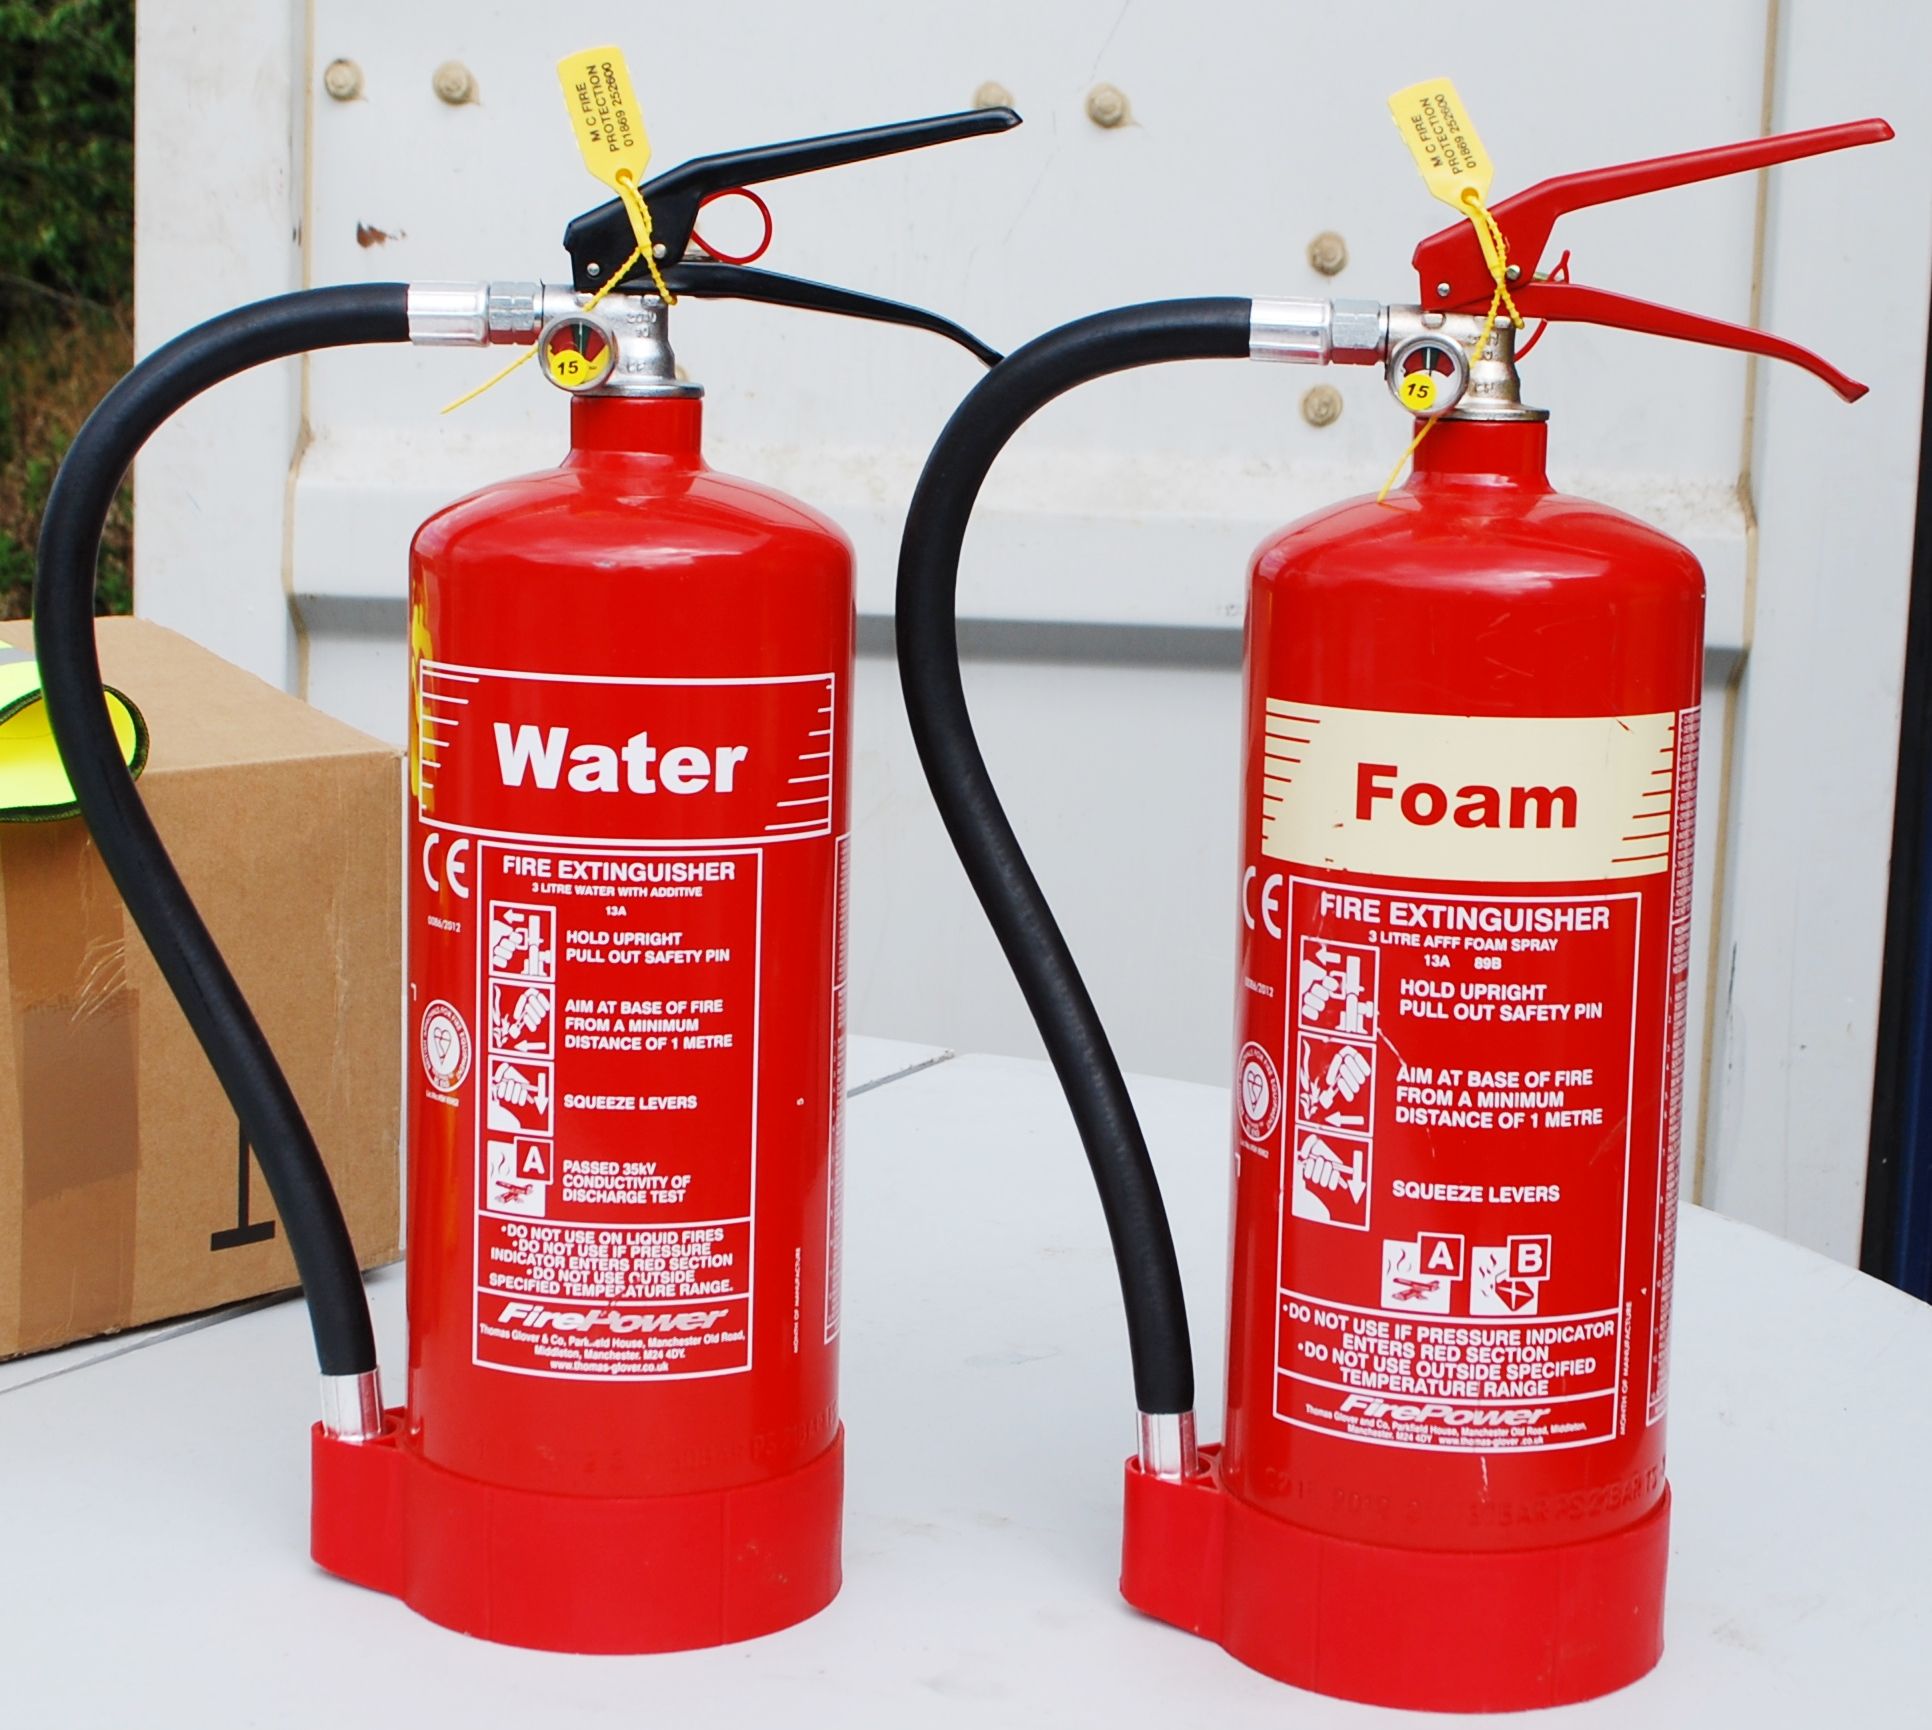 equip_fire_extinguishers